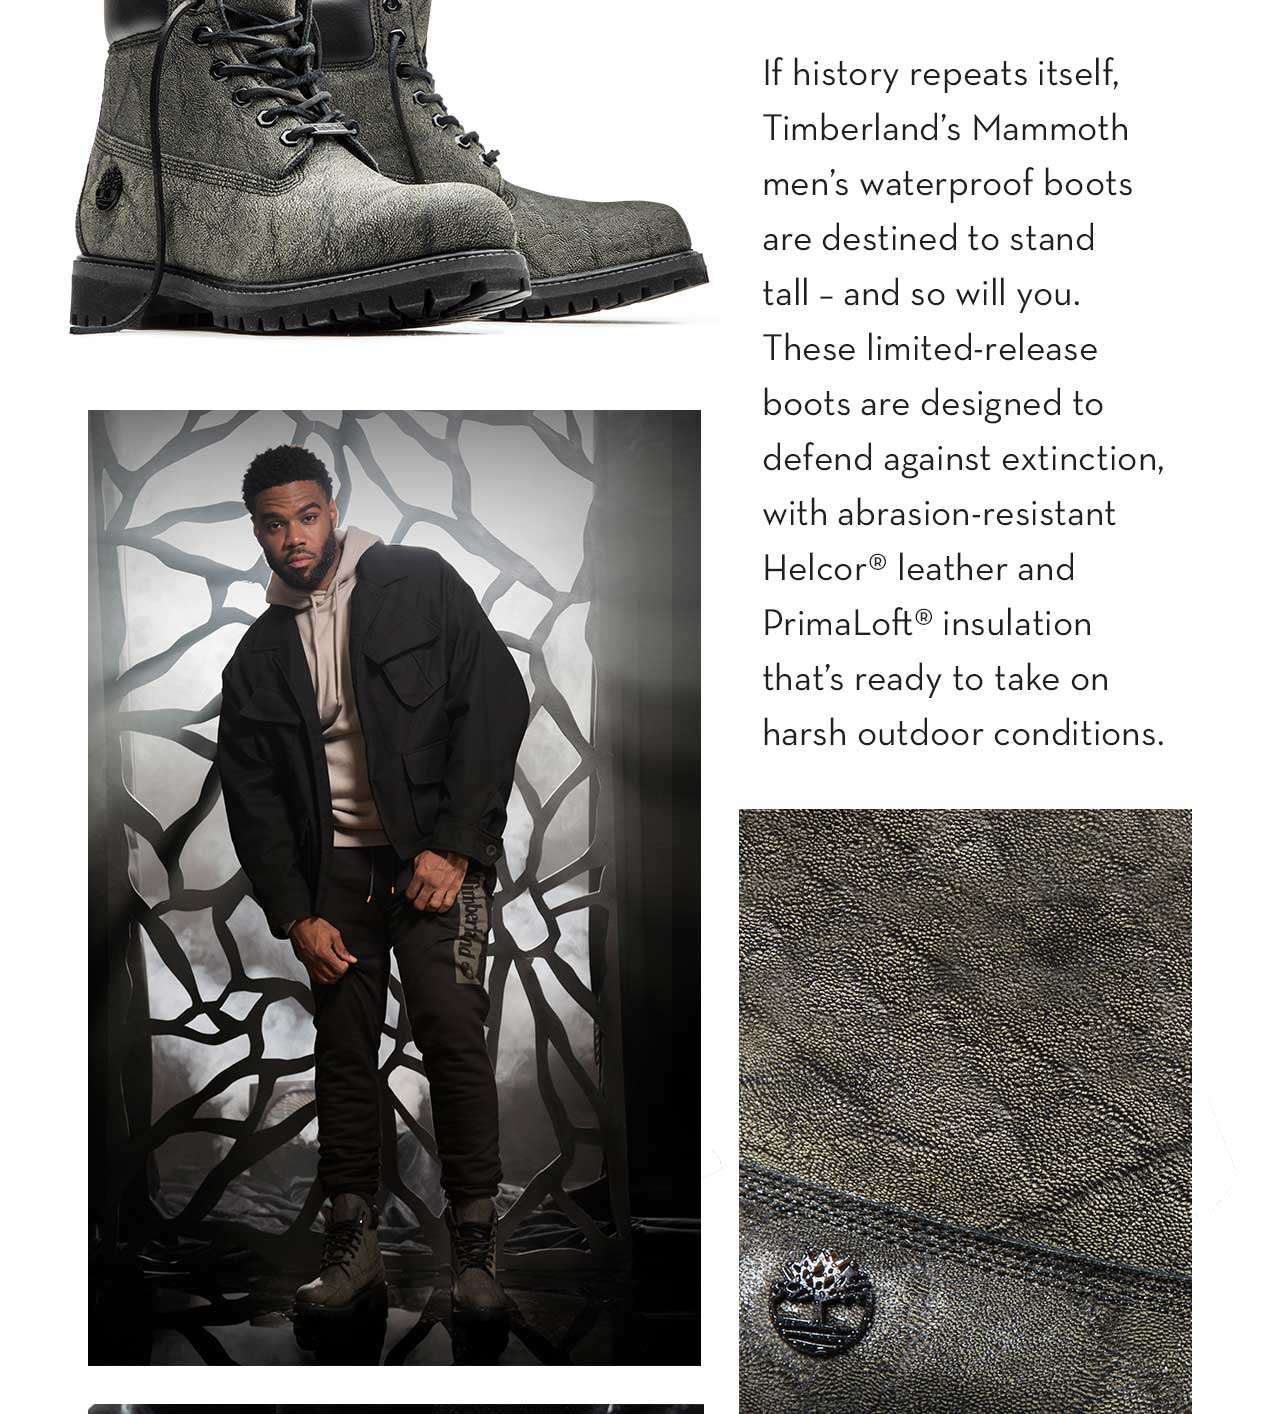 If history repeats itself, Timberland's Mammoth men's waterproof boots are destined to stand tall - and so will you. These limited-release boots are designed to defend against extinction, with abrasion-resistant Helcor leather and PrimaLoft insultion that's ready to take on harsh outdoor conditions.